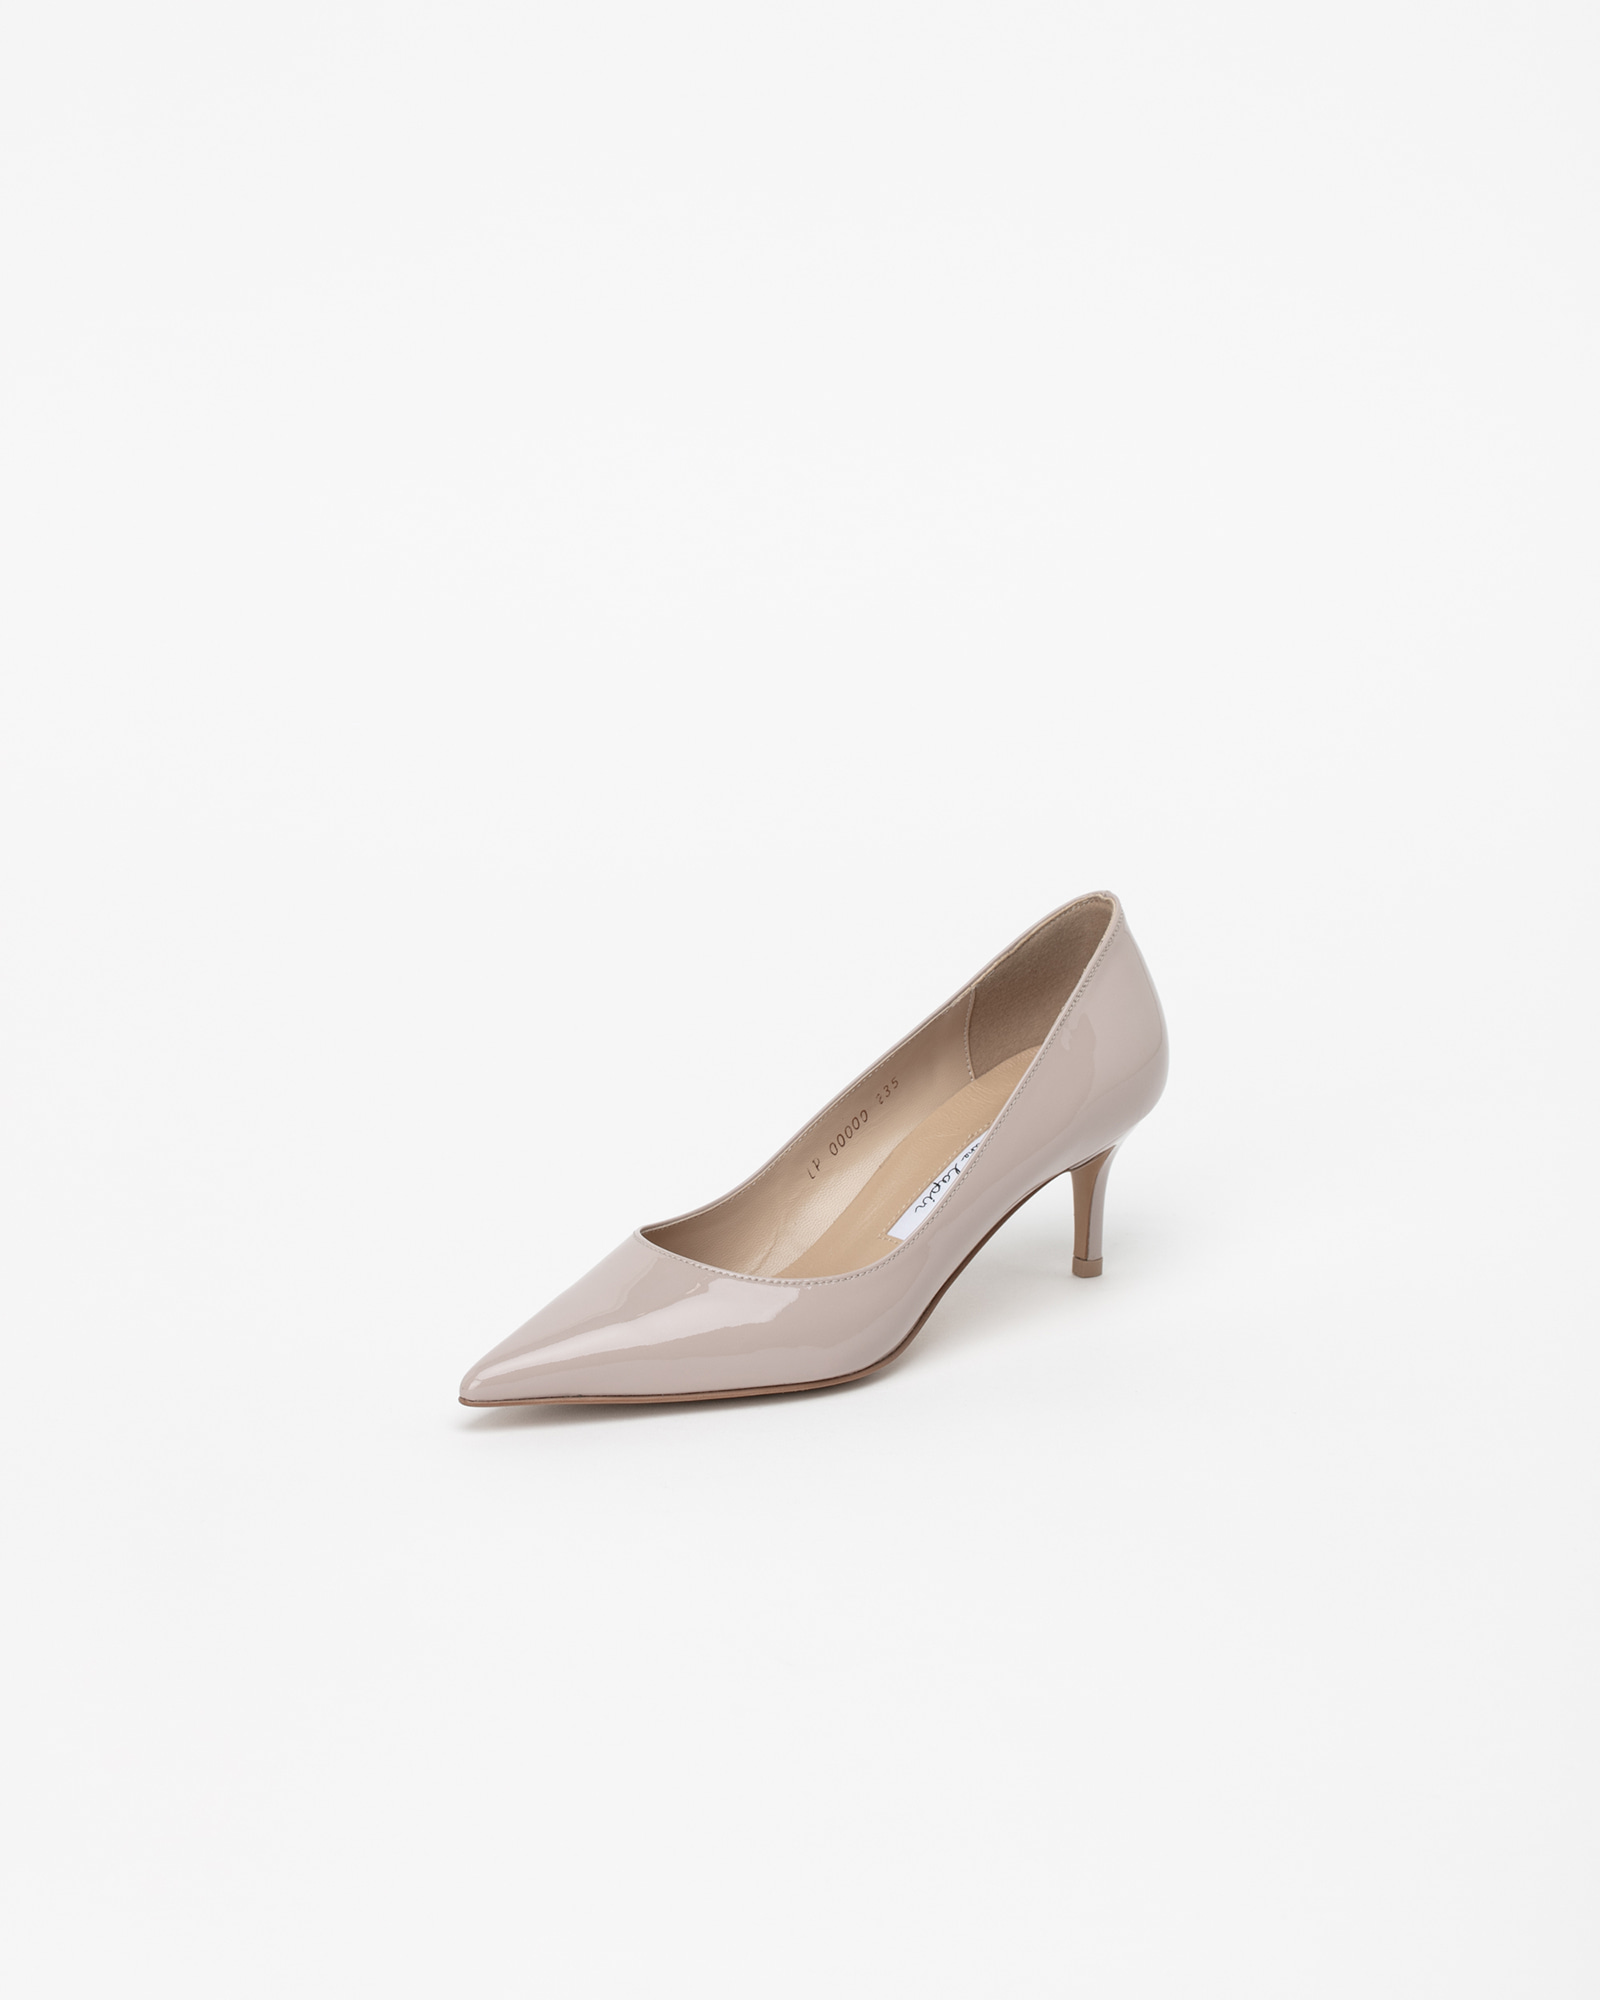 Chauffeur Stilletto Pumps in Light Lavender Patent